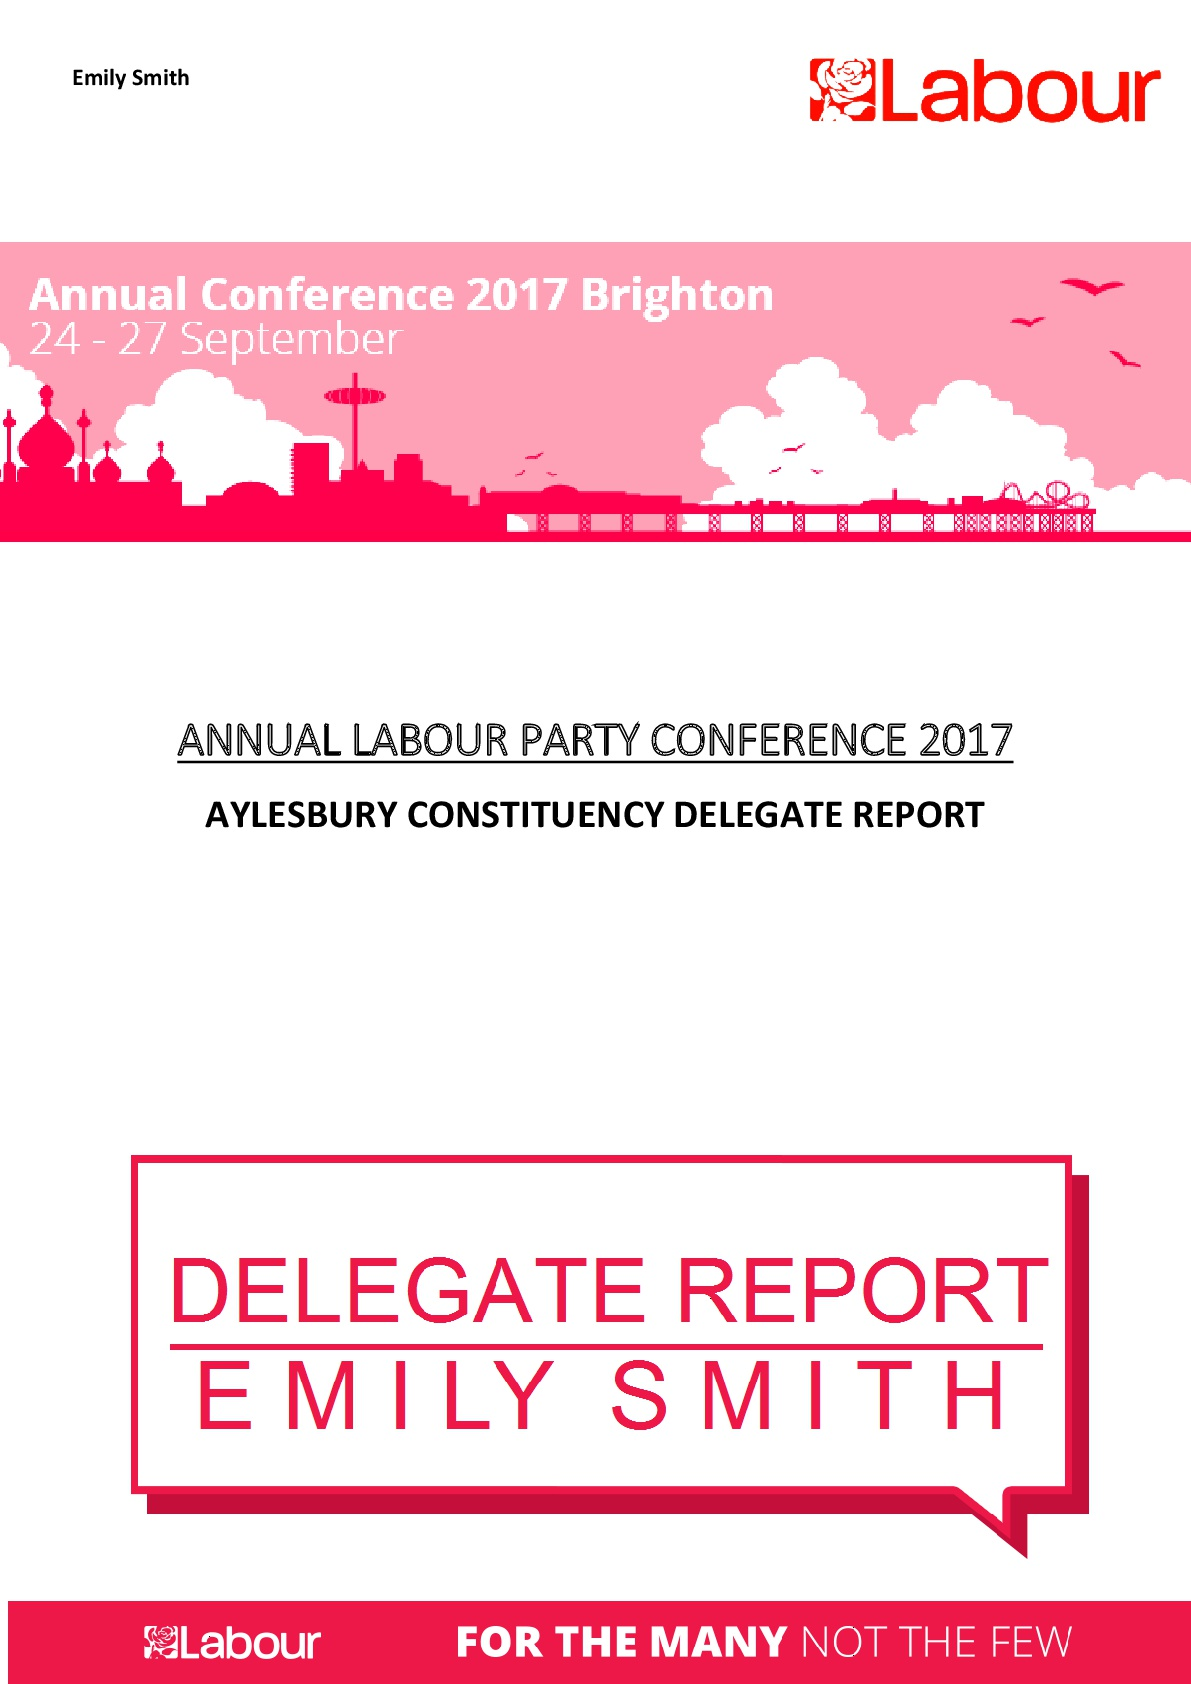 Annual-Conference-Delegate-Report--001.jpg